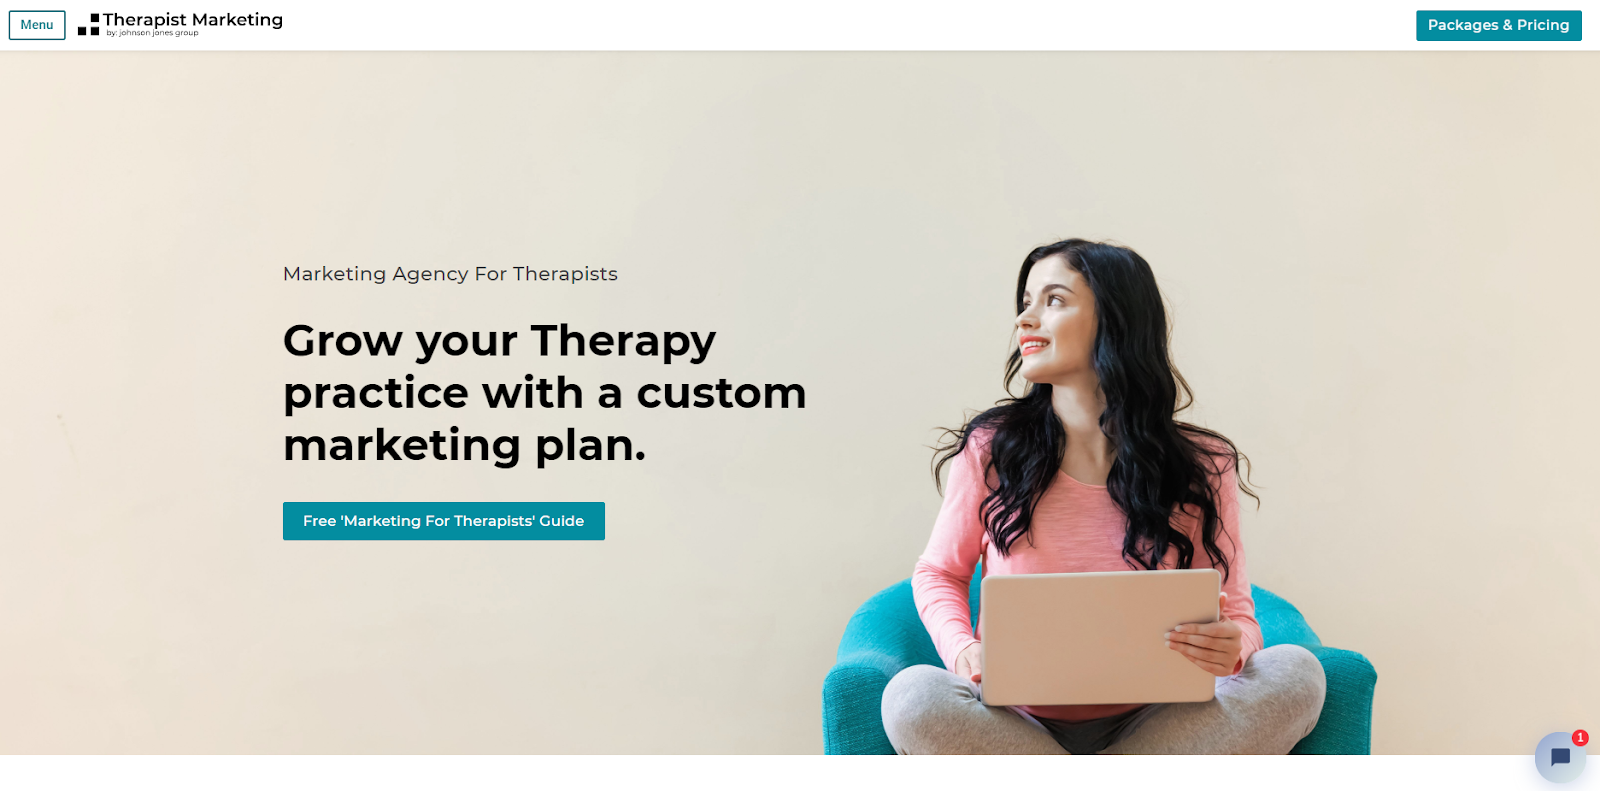 Therapy Ads: 14 Mind-Blowing Ways to Advertise Your Private Practice [Update 2020] 20